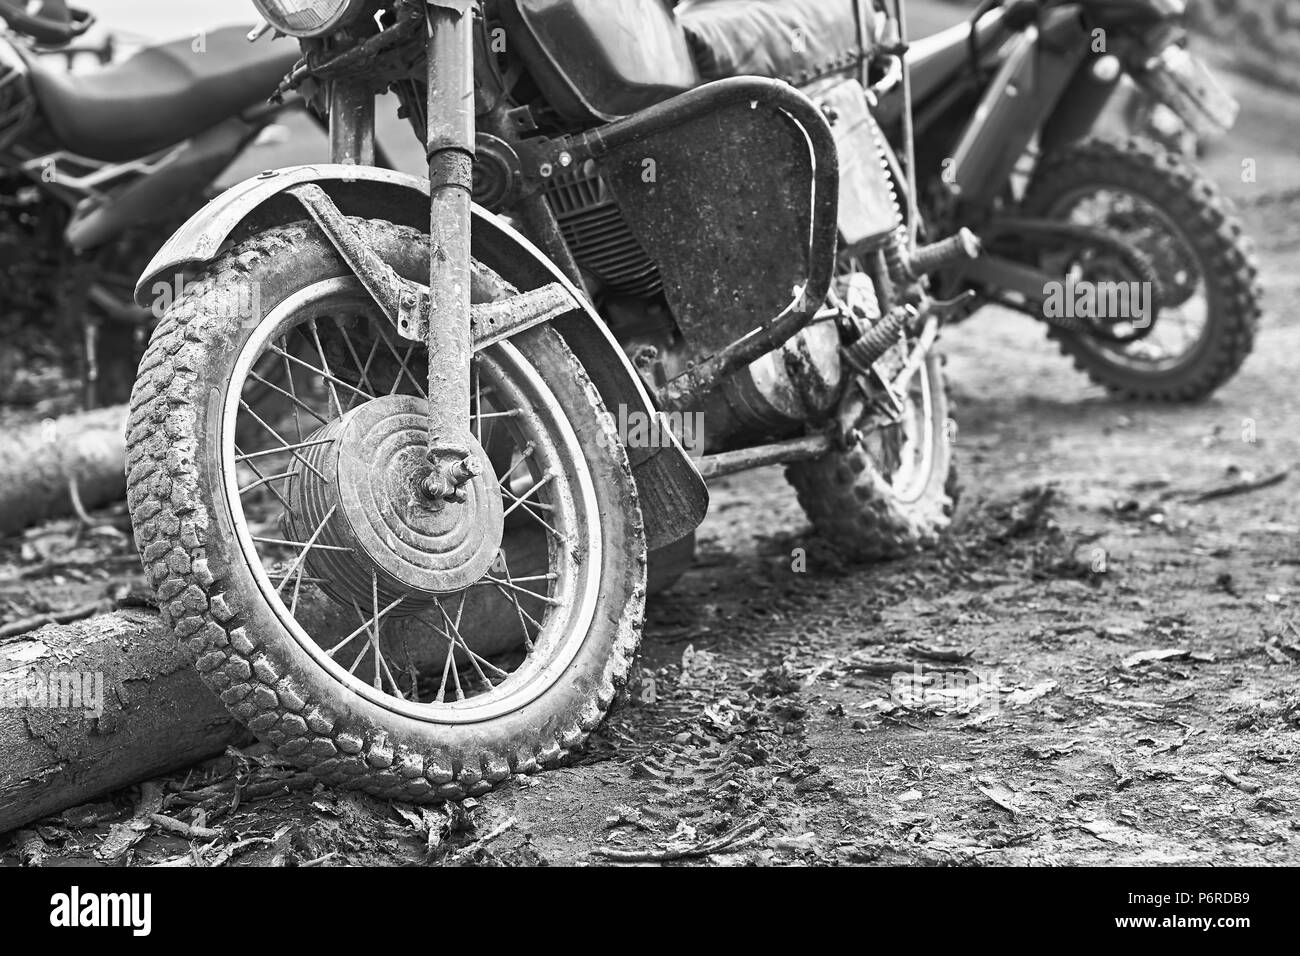 Offroad mountain motorcycle or bike taking part in motocros competition parked on dirty terrain road - Stock Image